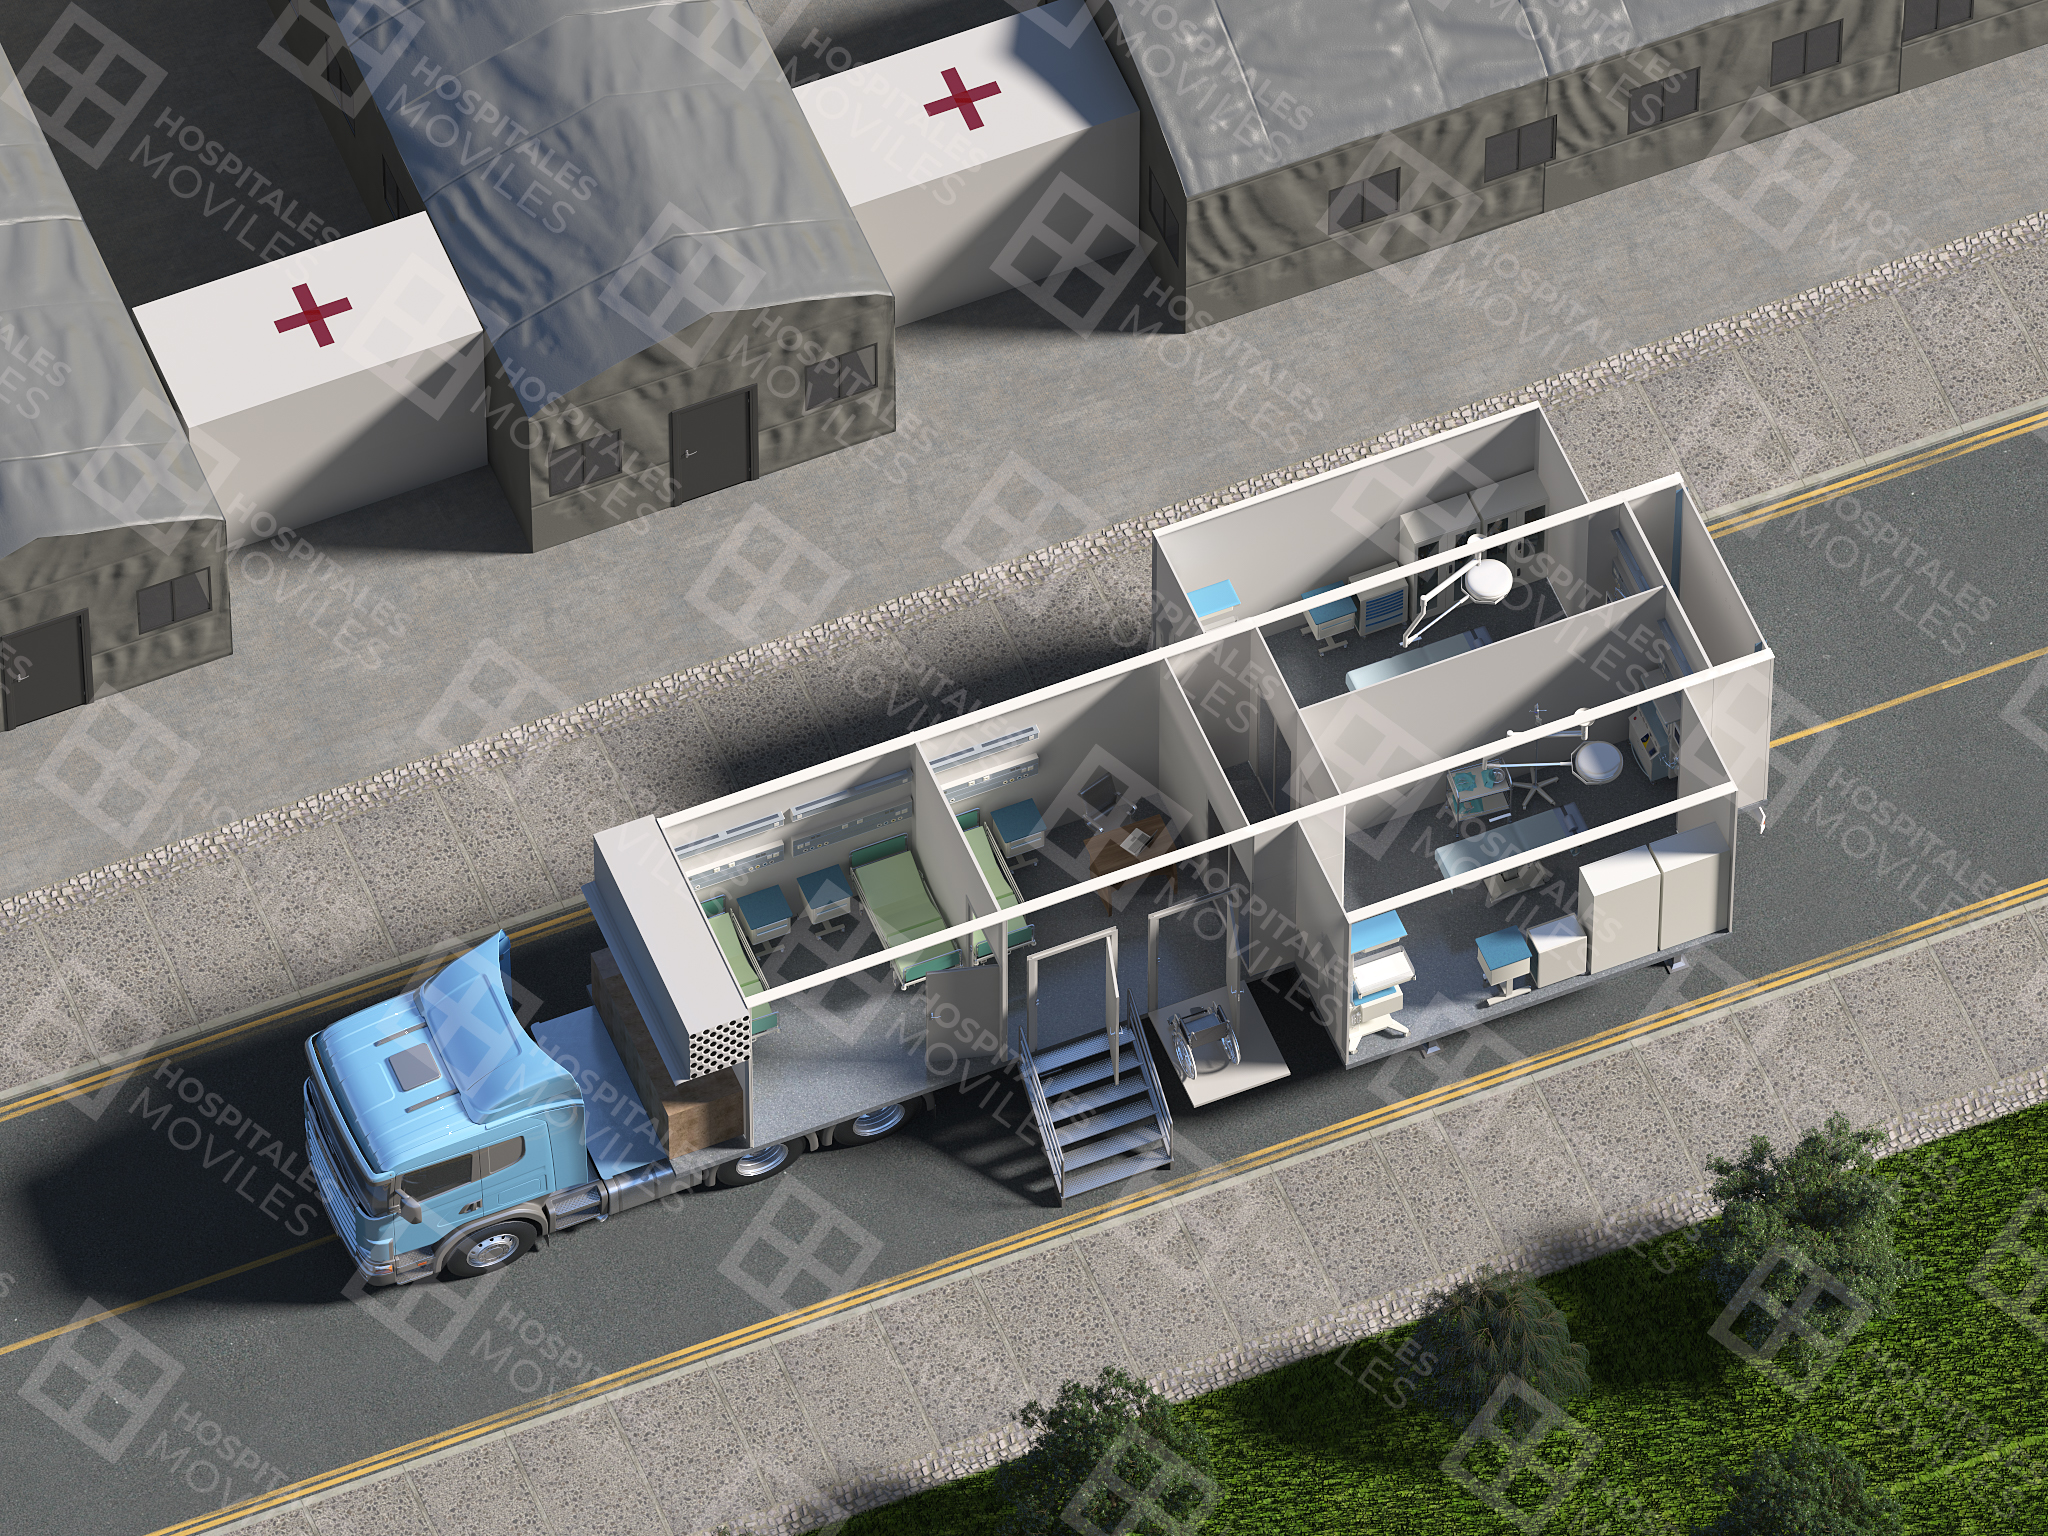 hospitales-moviles-surgery-intensive-care-1